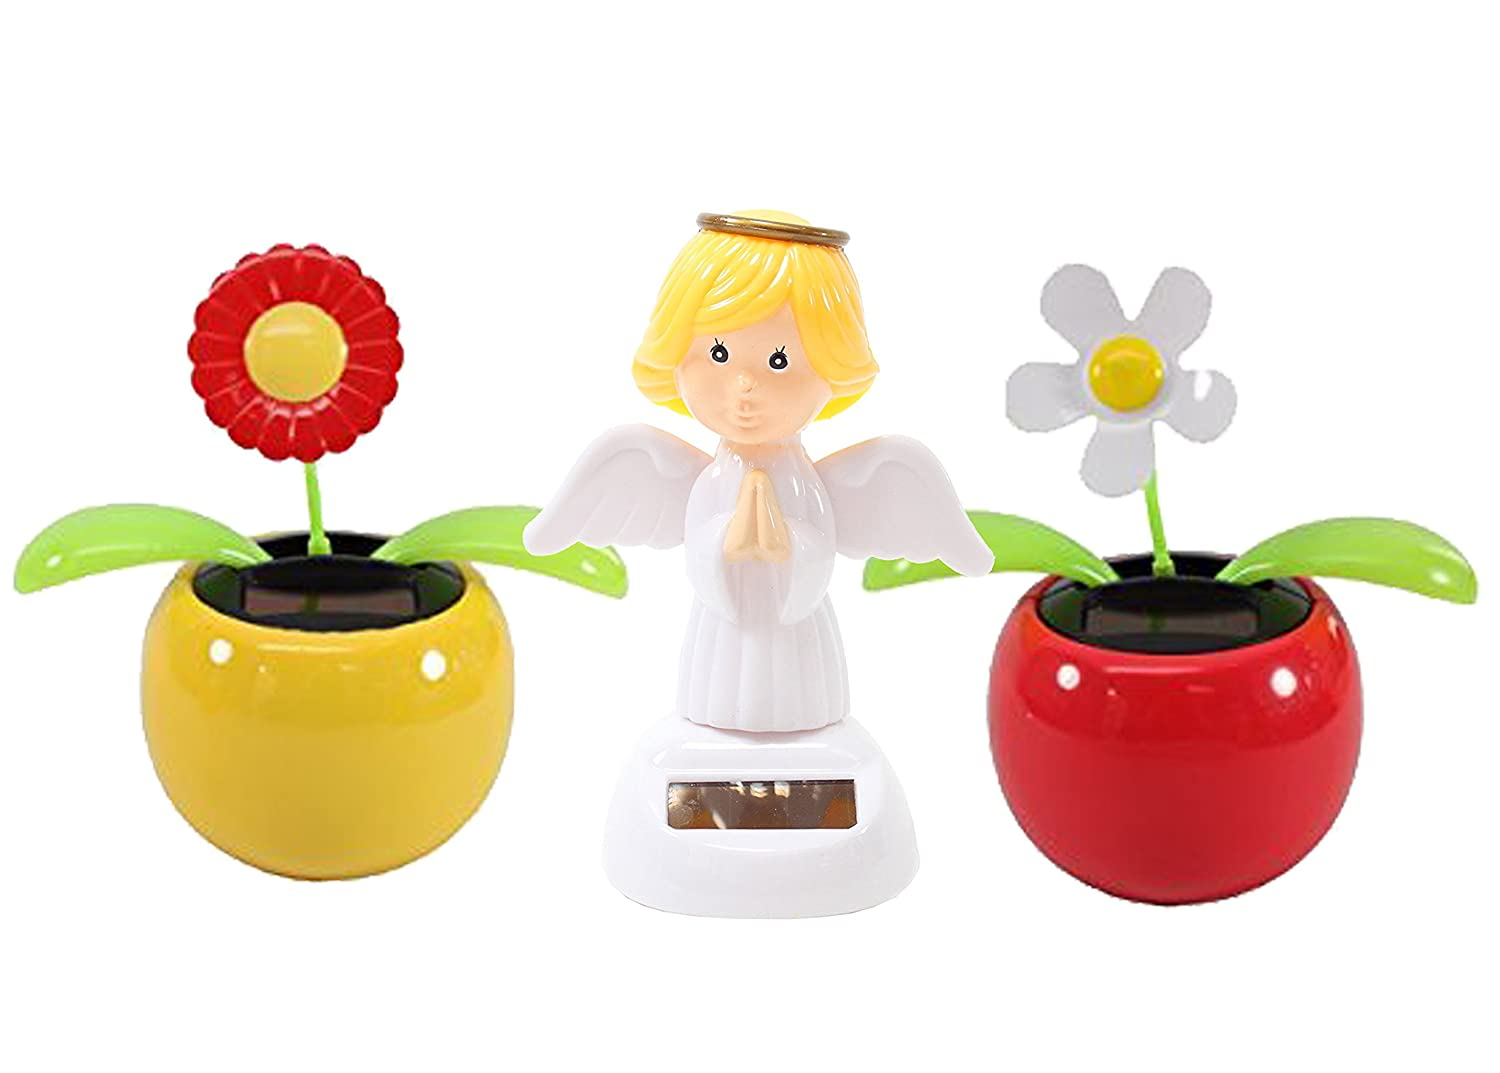 Dancing Flowers & Angel Solar Toys Combo ~ 1 Red Sunflower in Yellow Pot + 1 White Daisy in Red Pot + 1 Angel Solar Toy   B06X915J7B